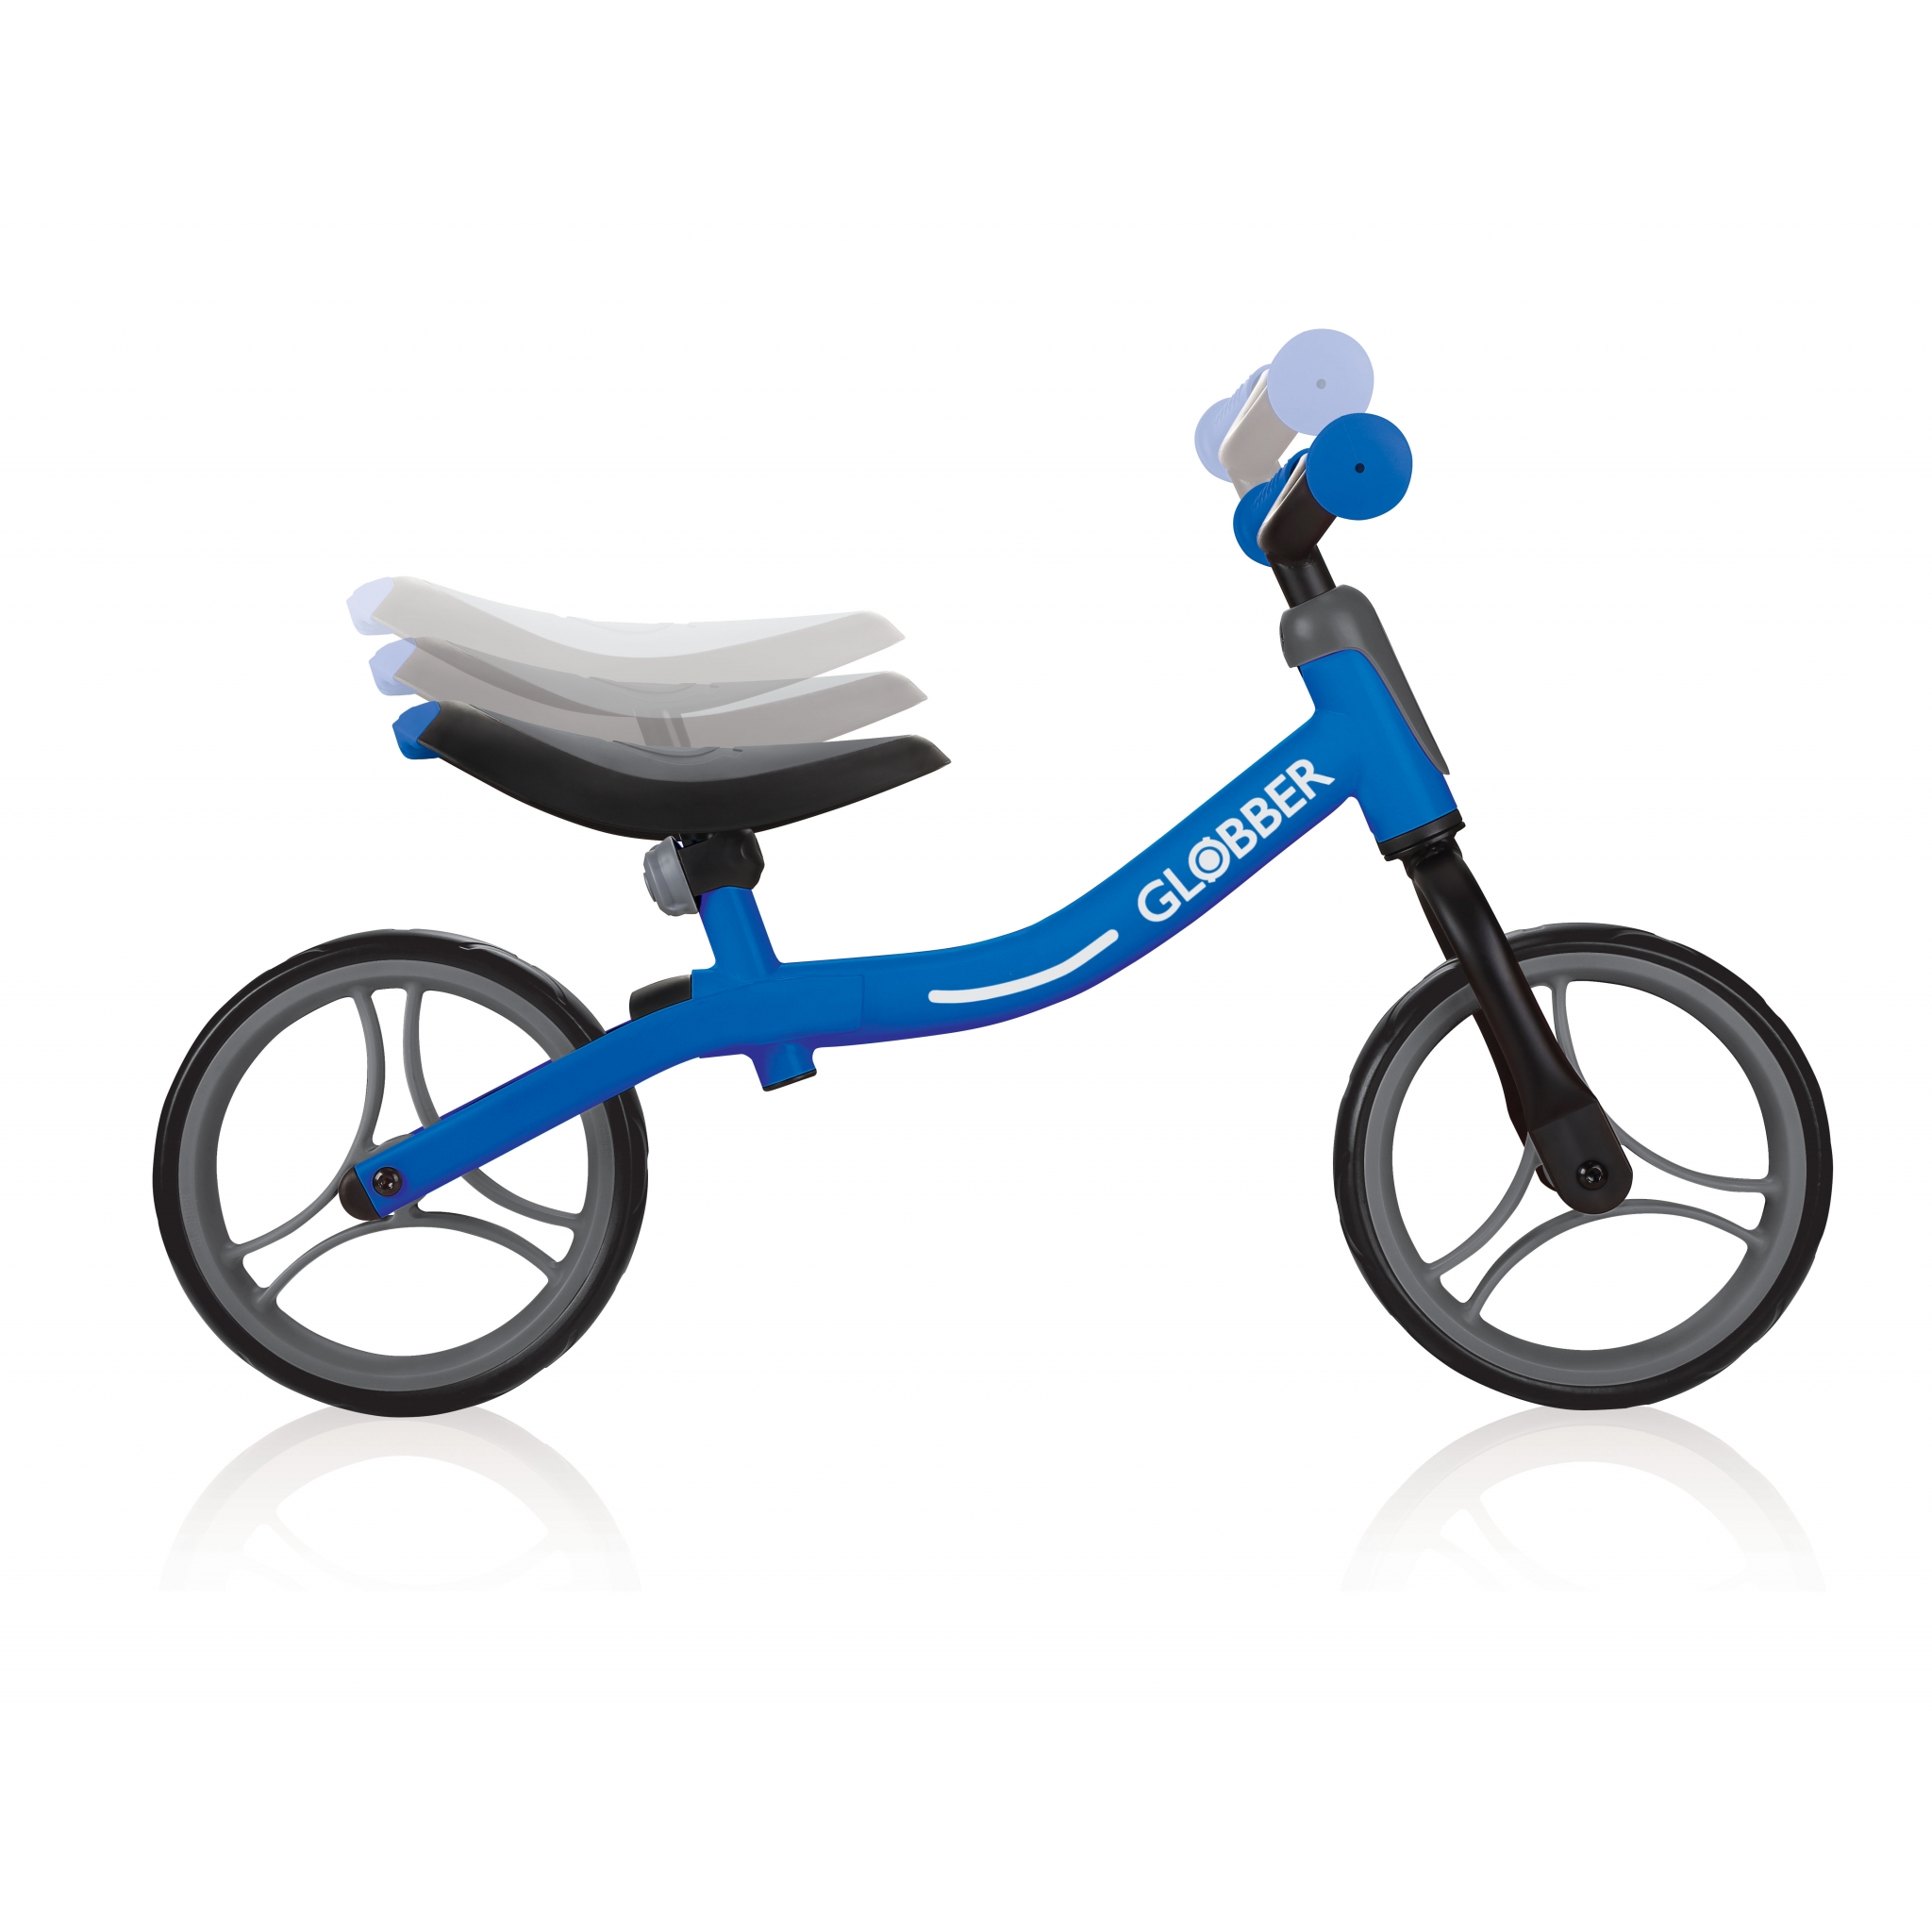 adjustable balance bike for toddlers - Globber GO BIKE